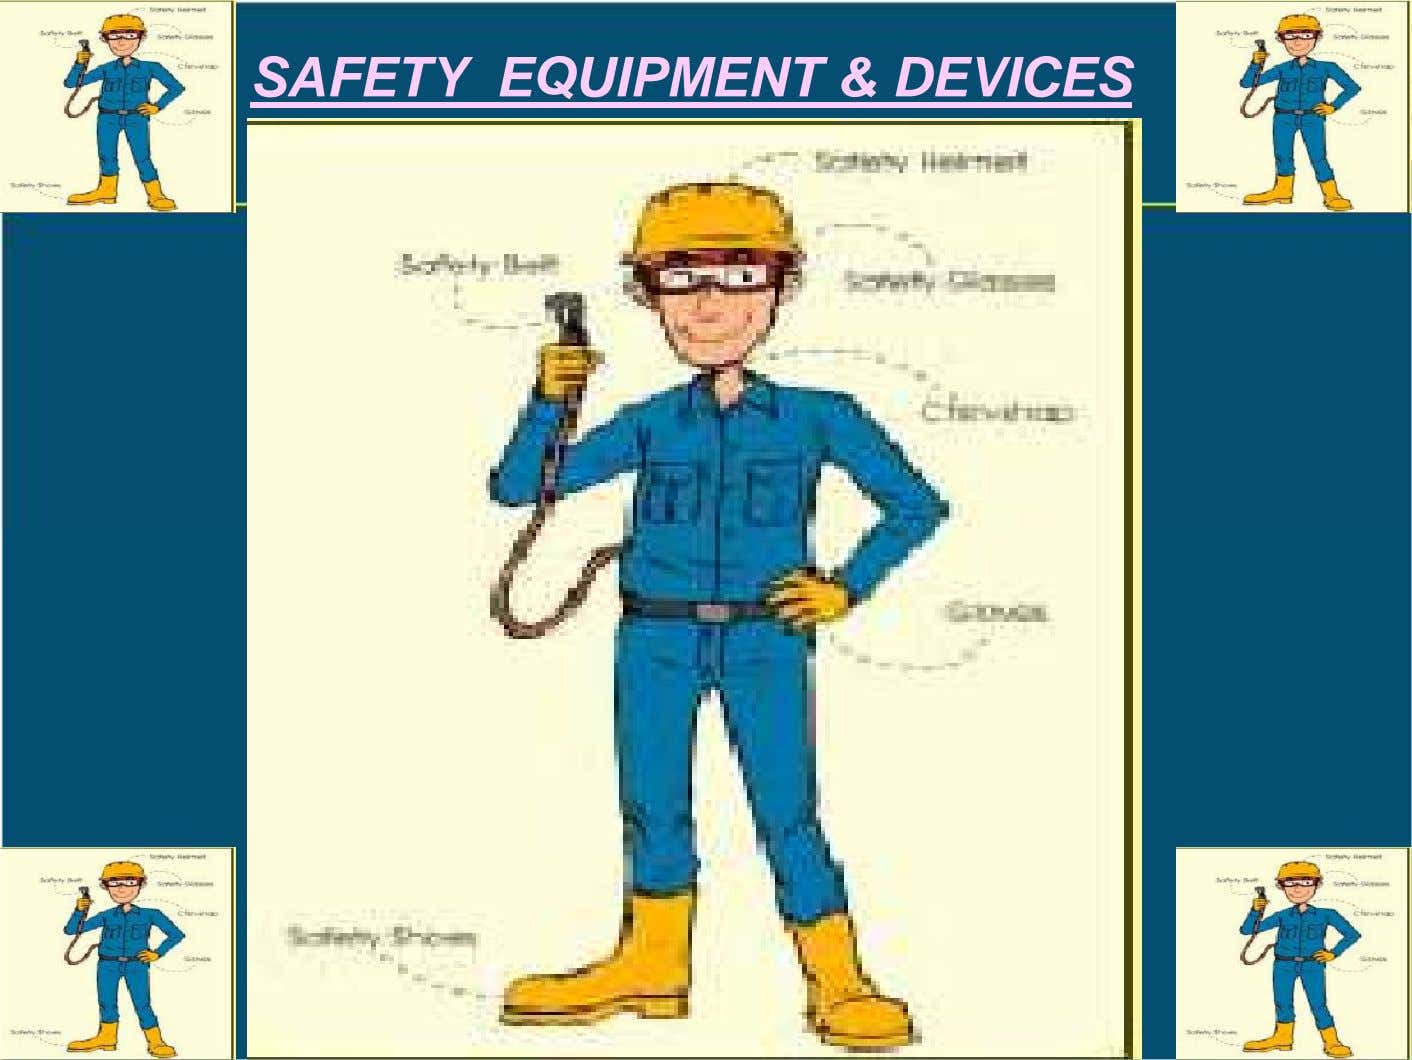 SAFETY EQUIPMENT & DEVICES